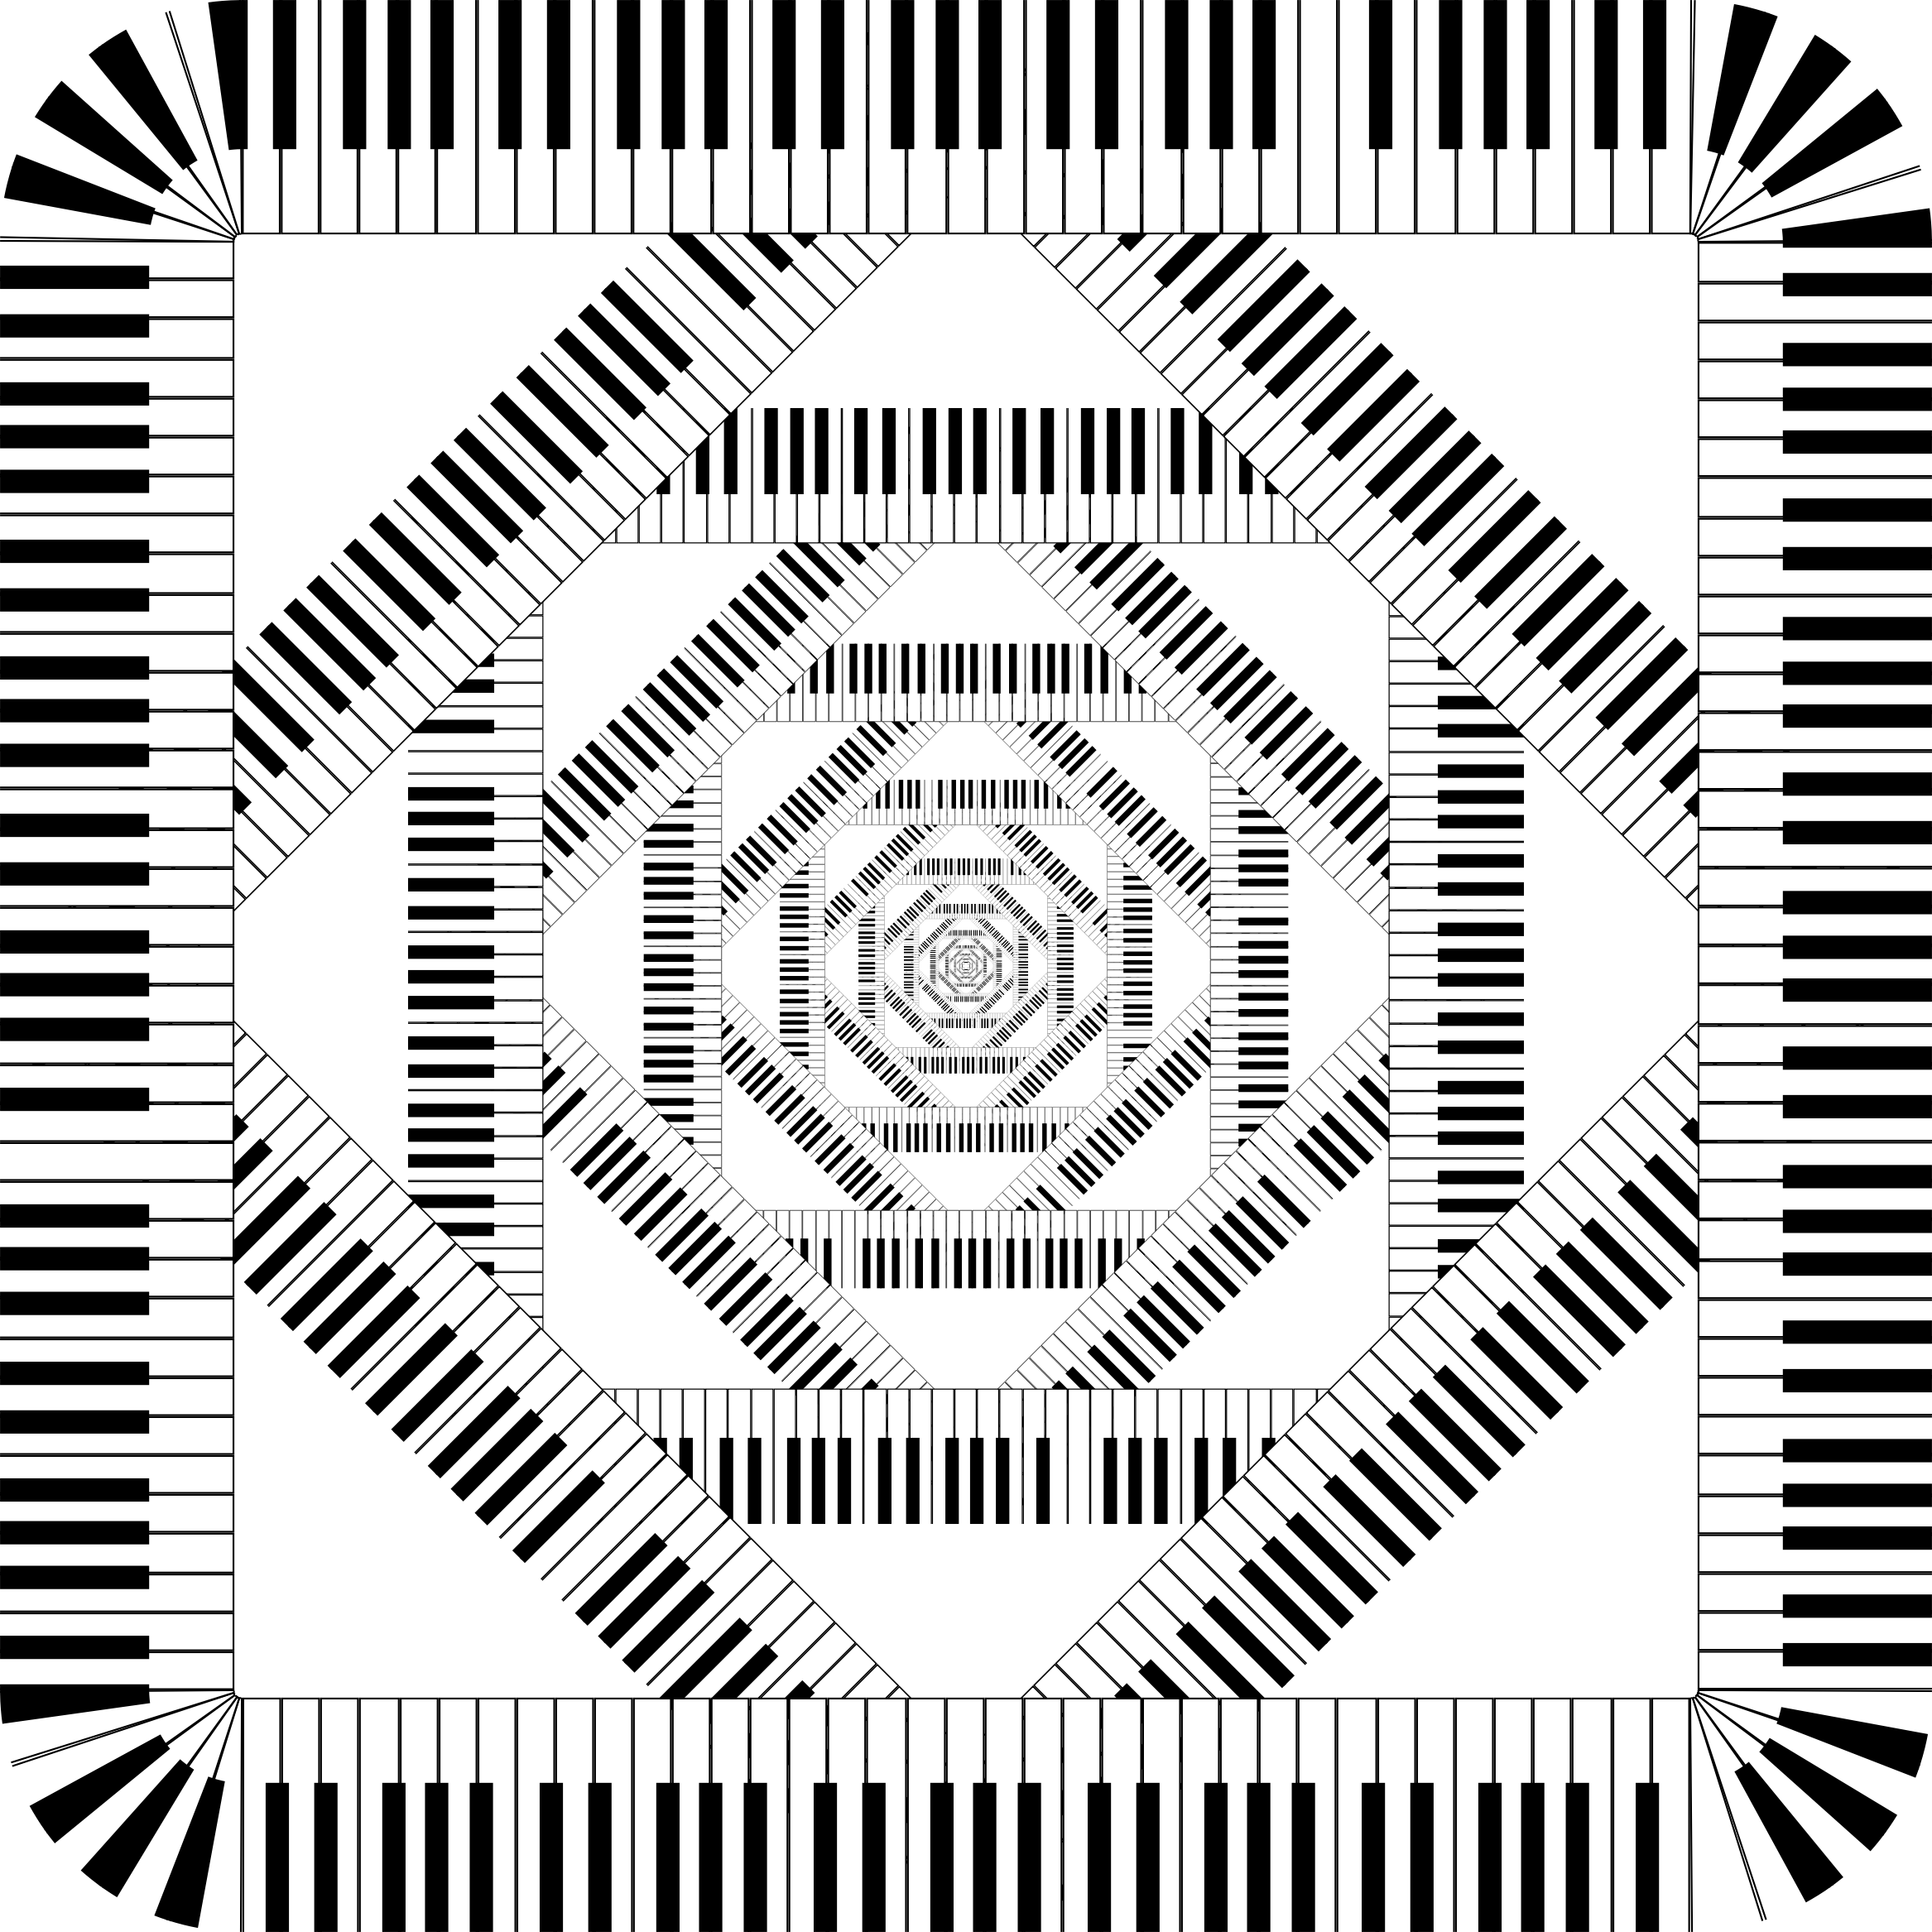 Clipart piano swirl. Keys rounded square vortex